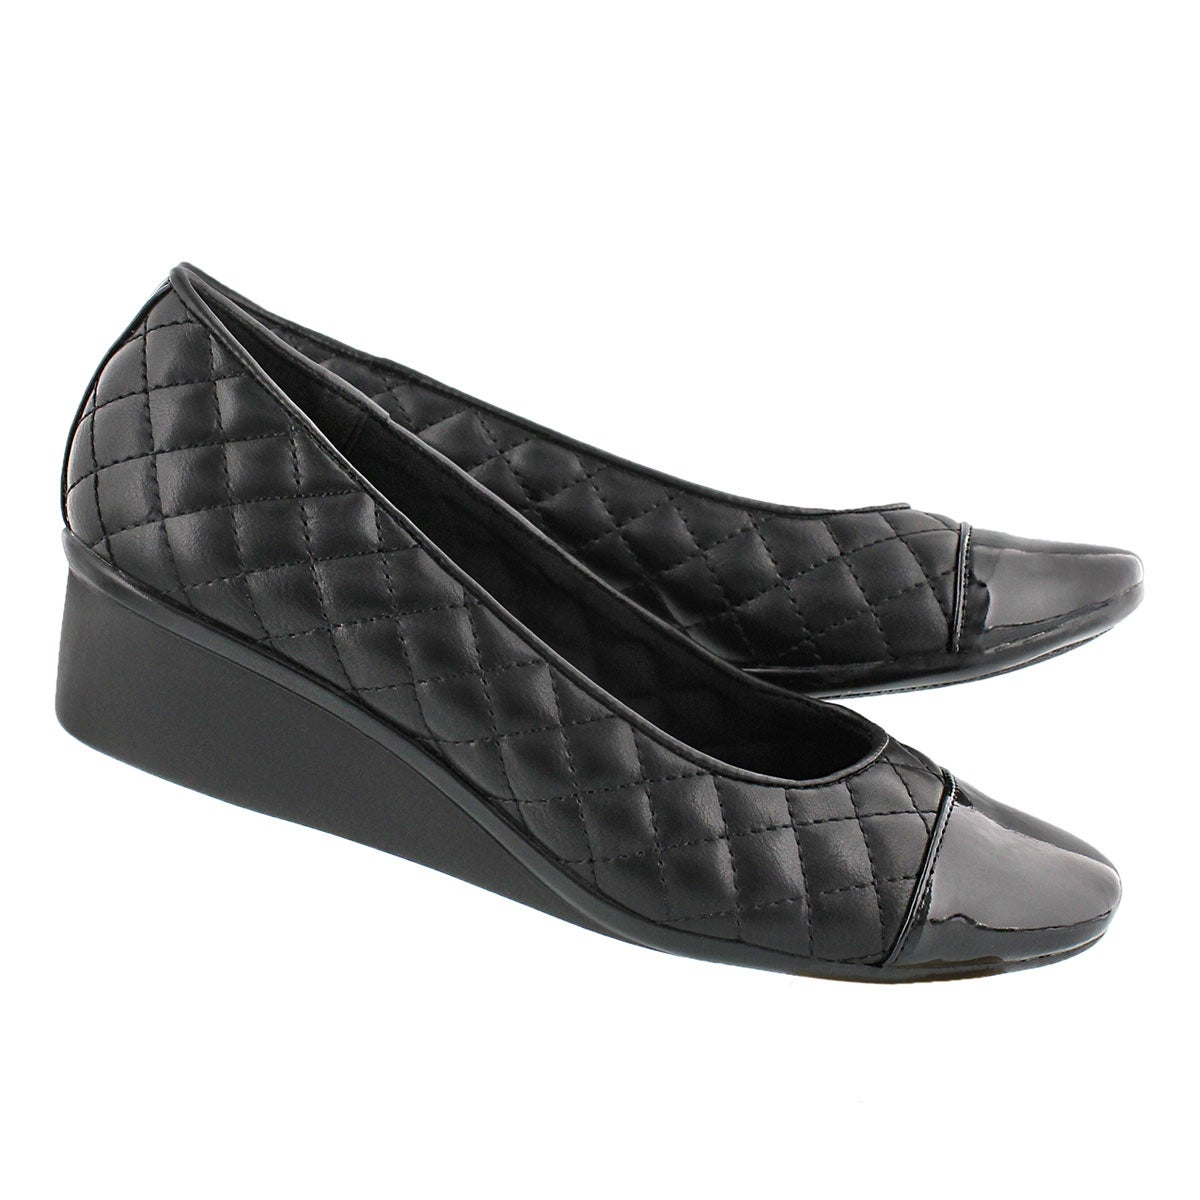 Lds Dusti 3 blk quilted casual slip on